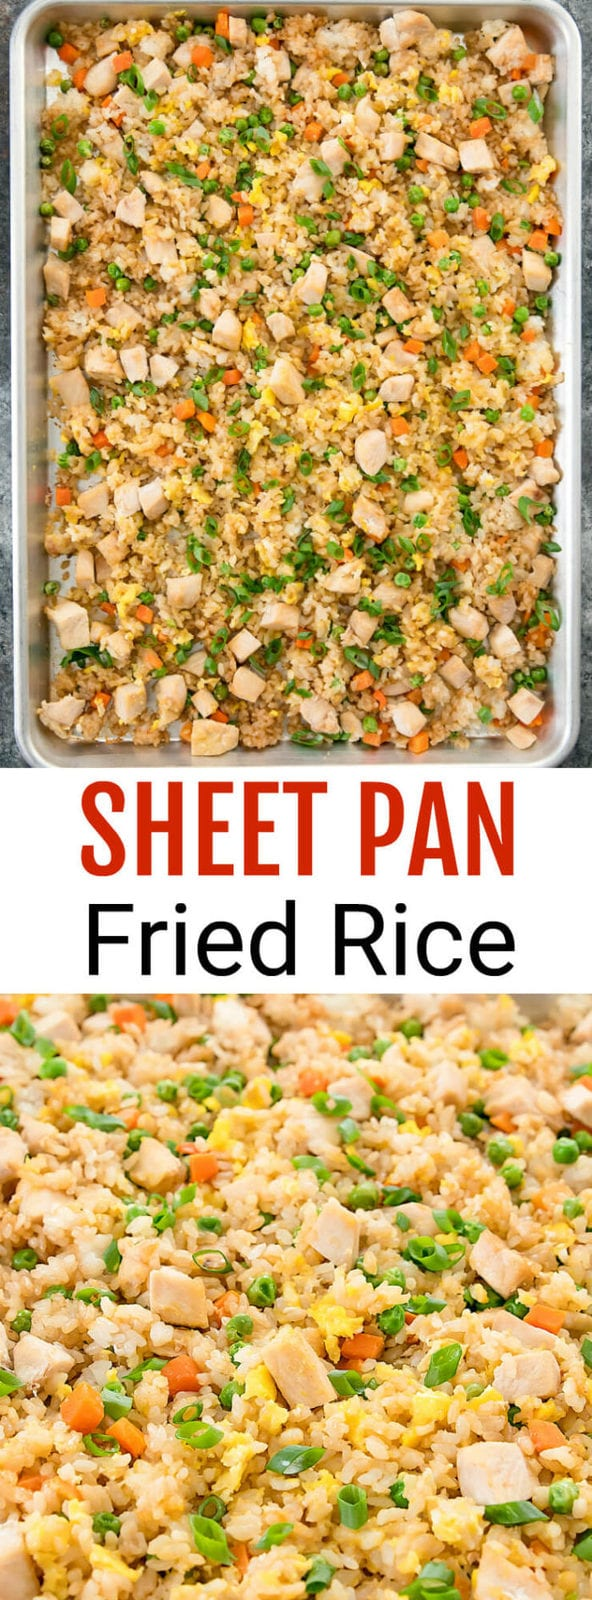 Sheet Pan Fried Rice